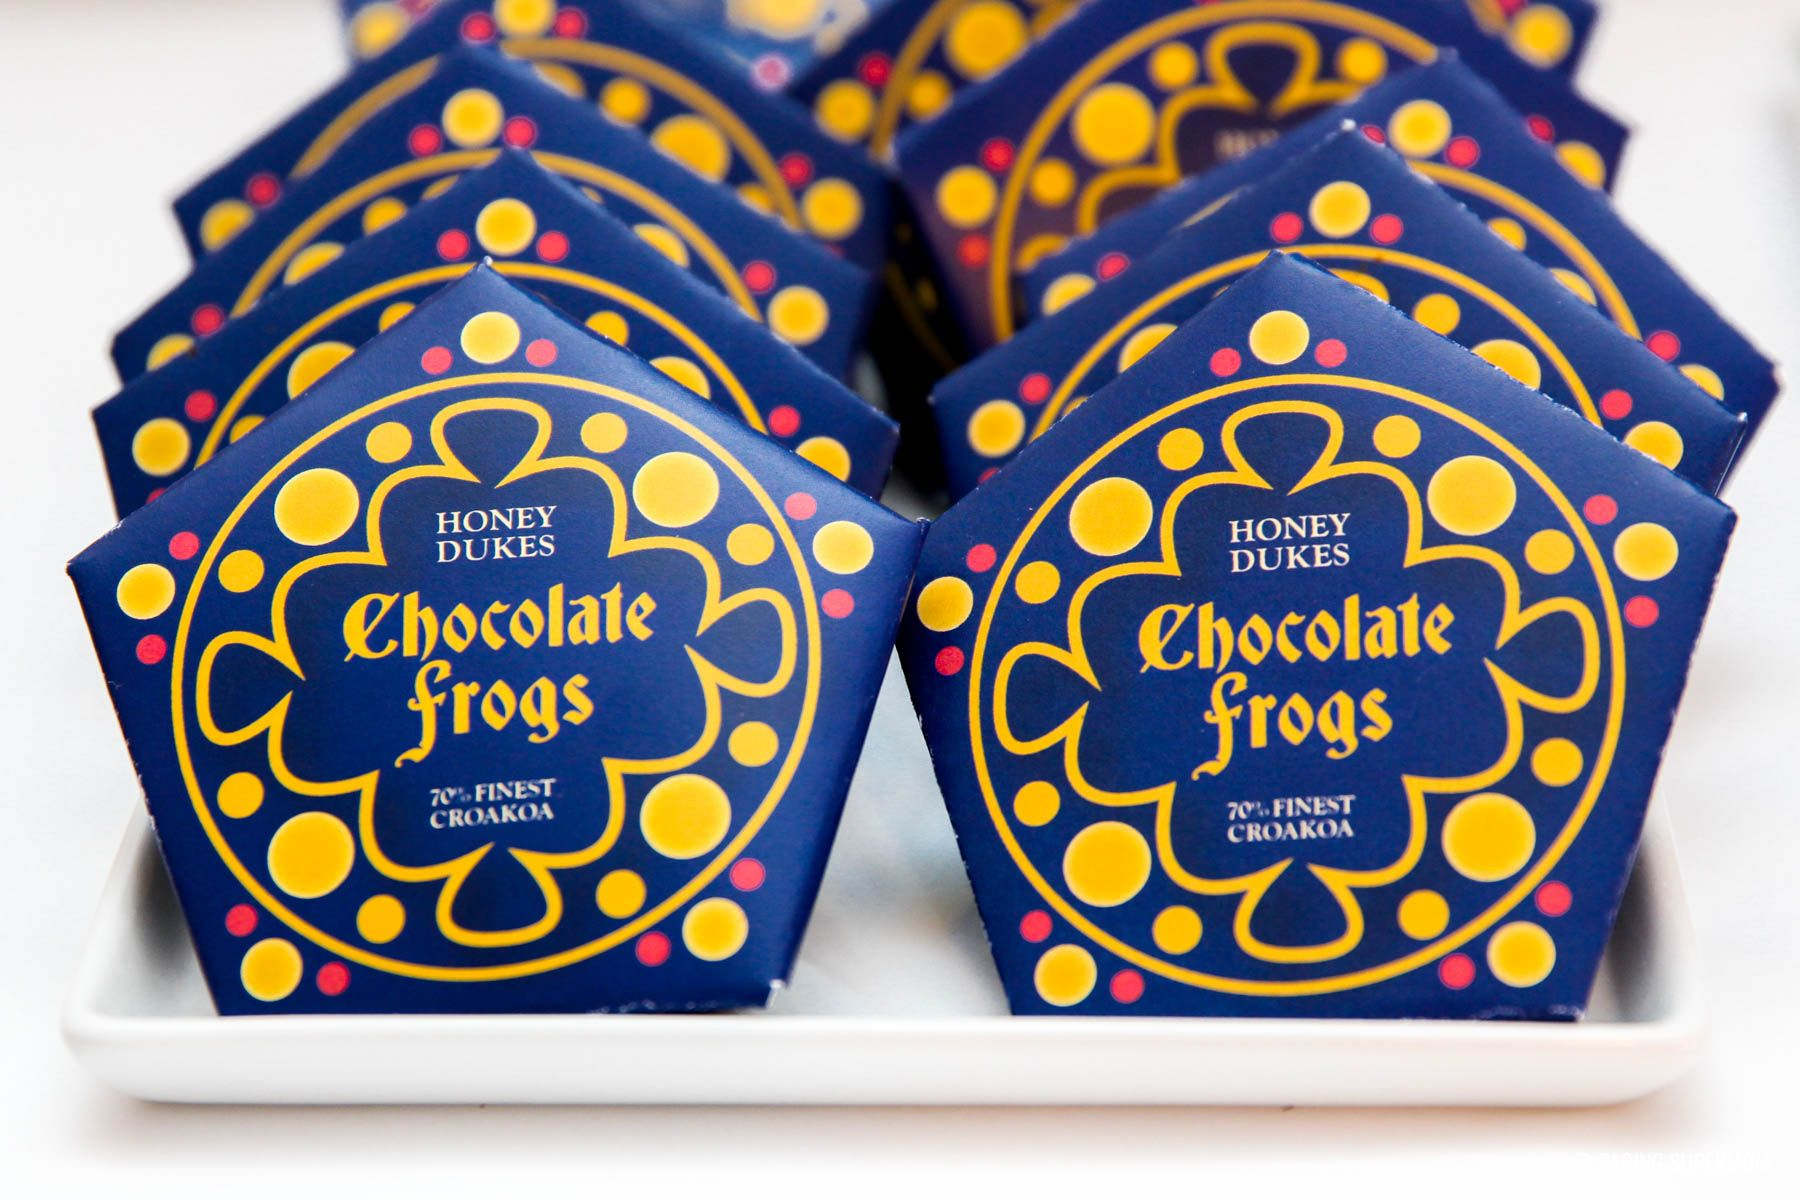 Harry Potter Chocolate Frogs Free Printable Template For Diy Honeydukes Chocolate Frogs Chocolate Frog Harry Potter Free Box Template